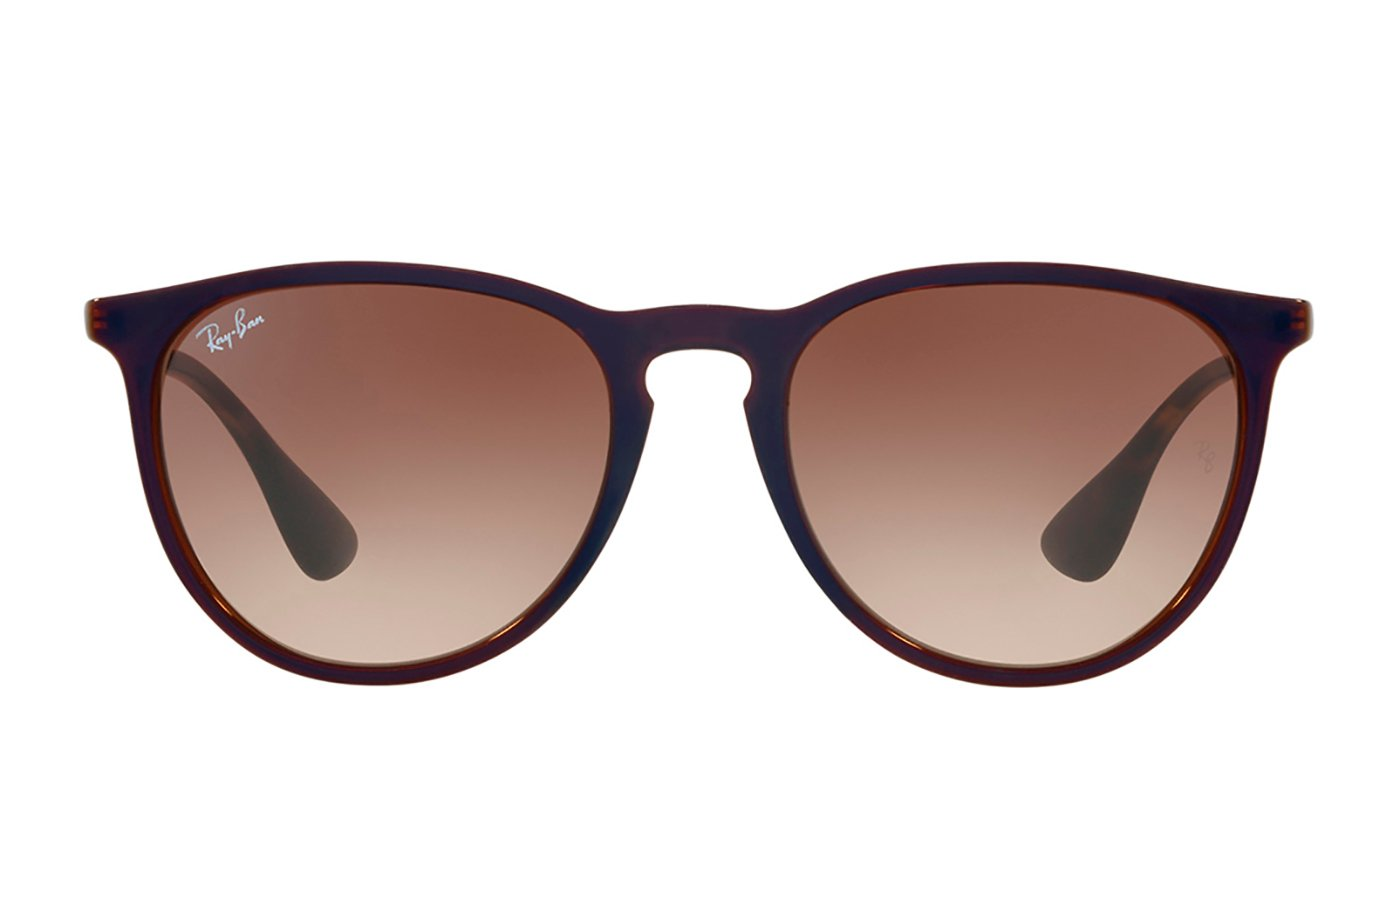 RAY-BAN ERIKA TRASPARENT BROWN SP BLUE 0RB4171 54 631513